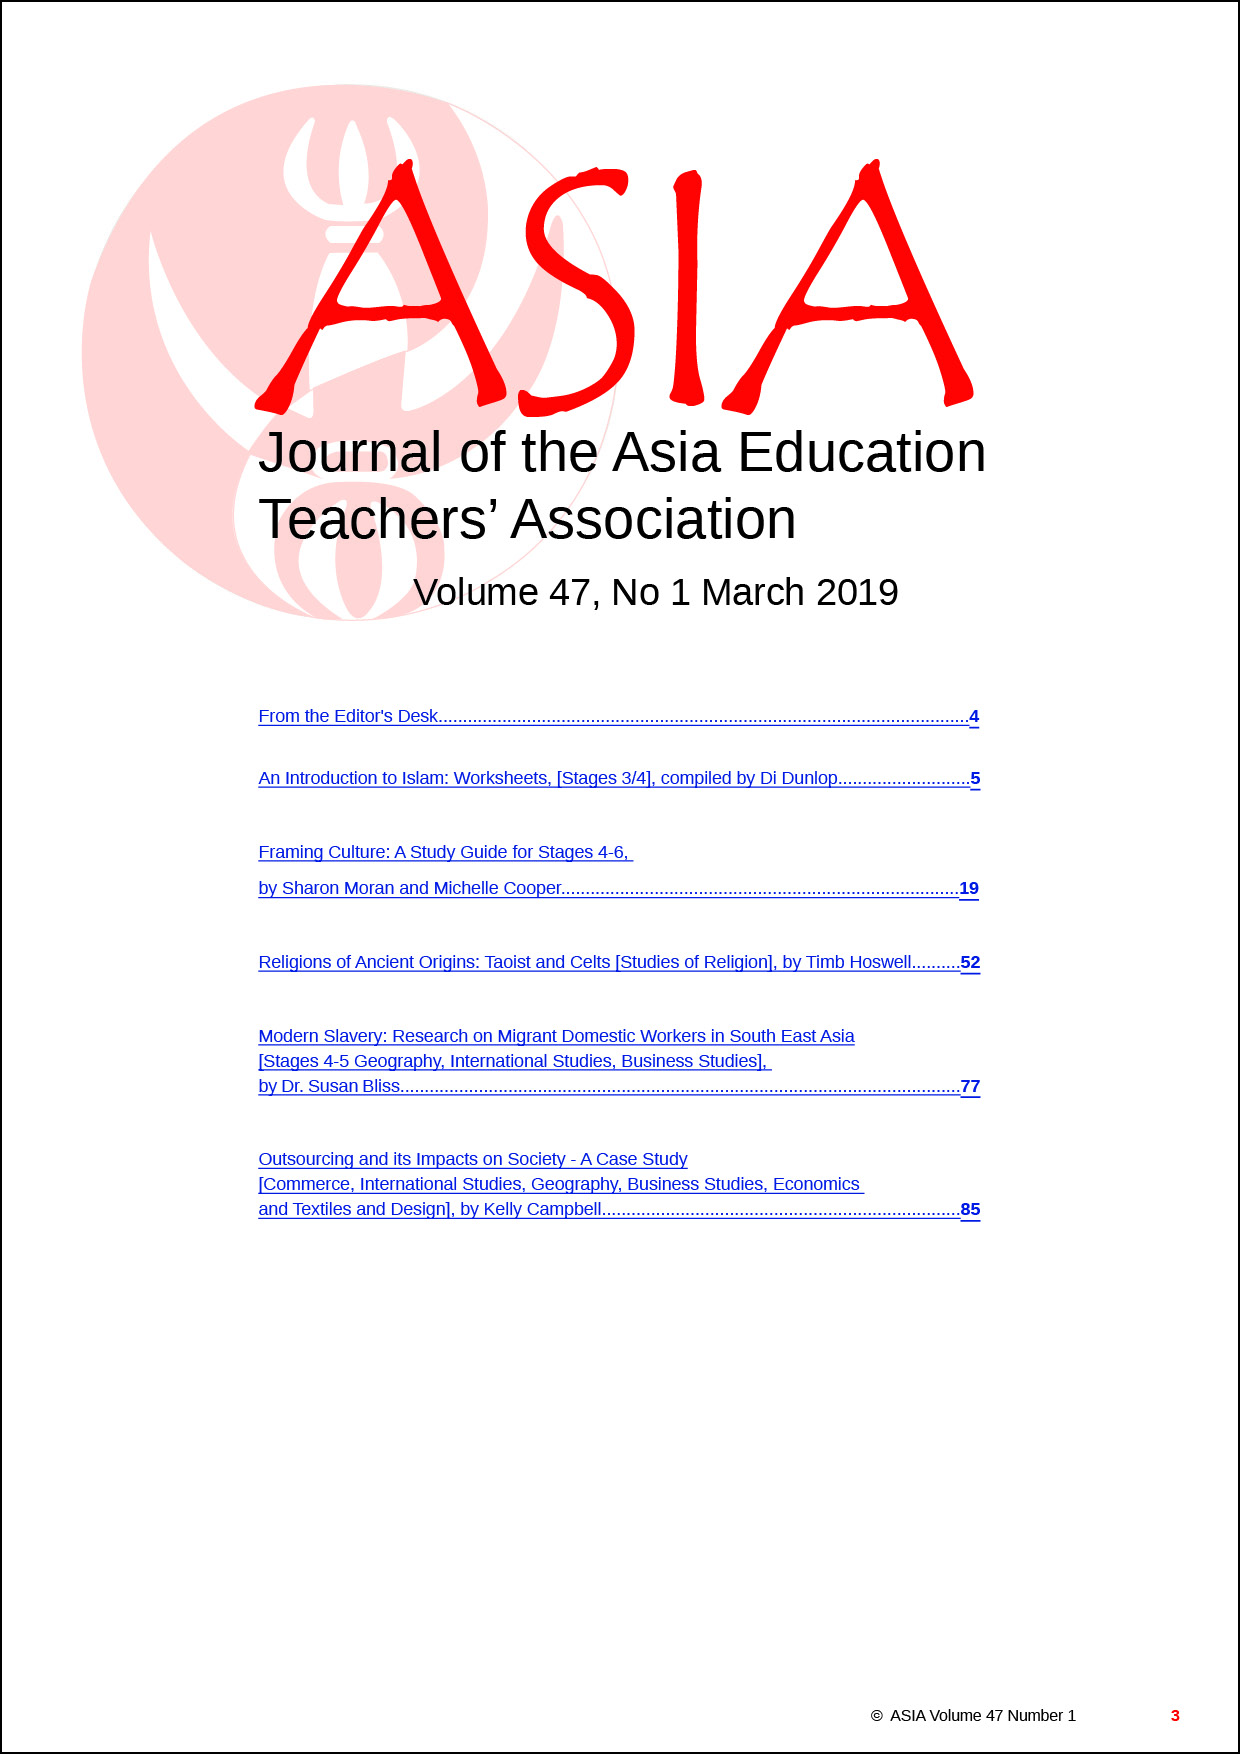 028 Free Download Researchs On Education Contents  Asiajournal Vol47 No1 March2019 Stunning Research PapersFull